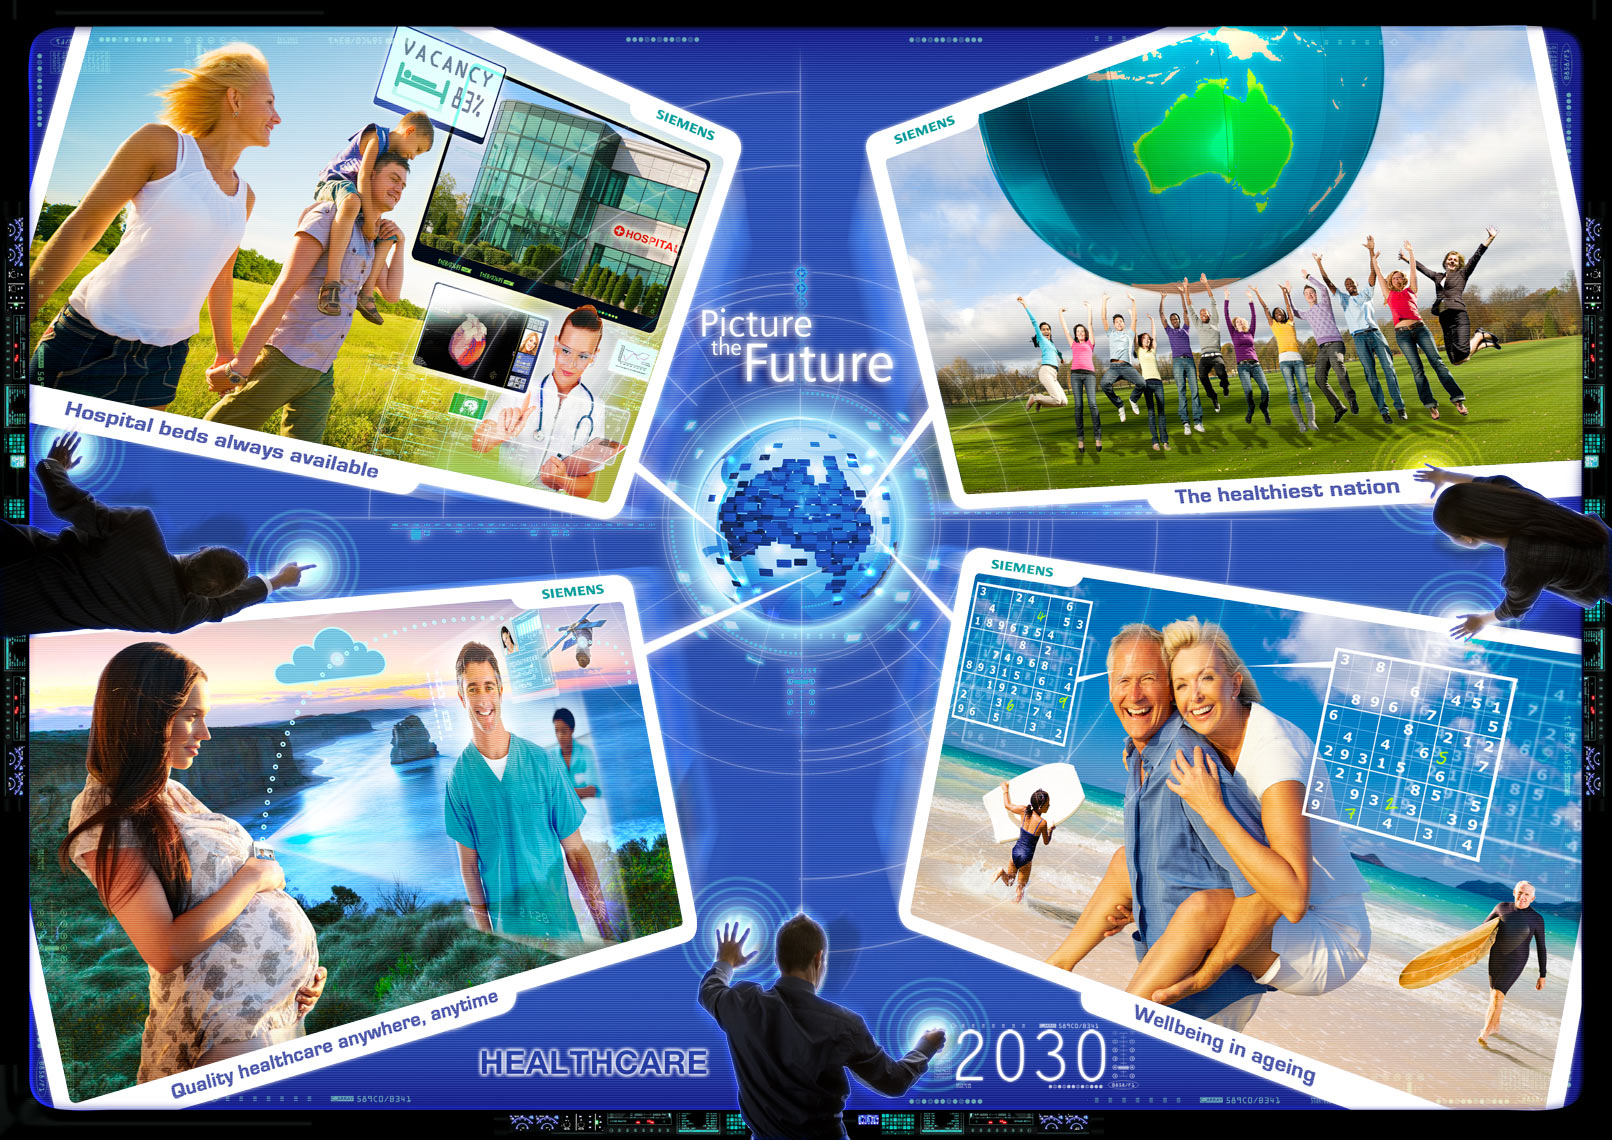 Healthcare Siemens Picture the Future communication design photoshop expert